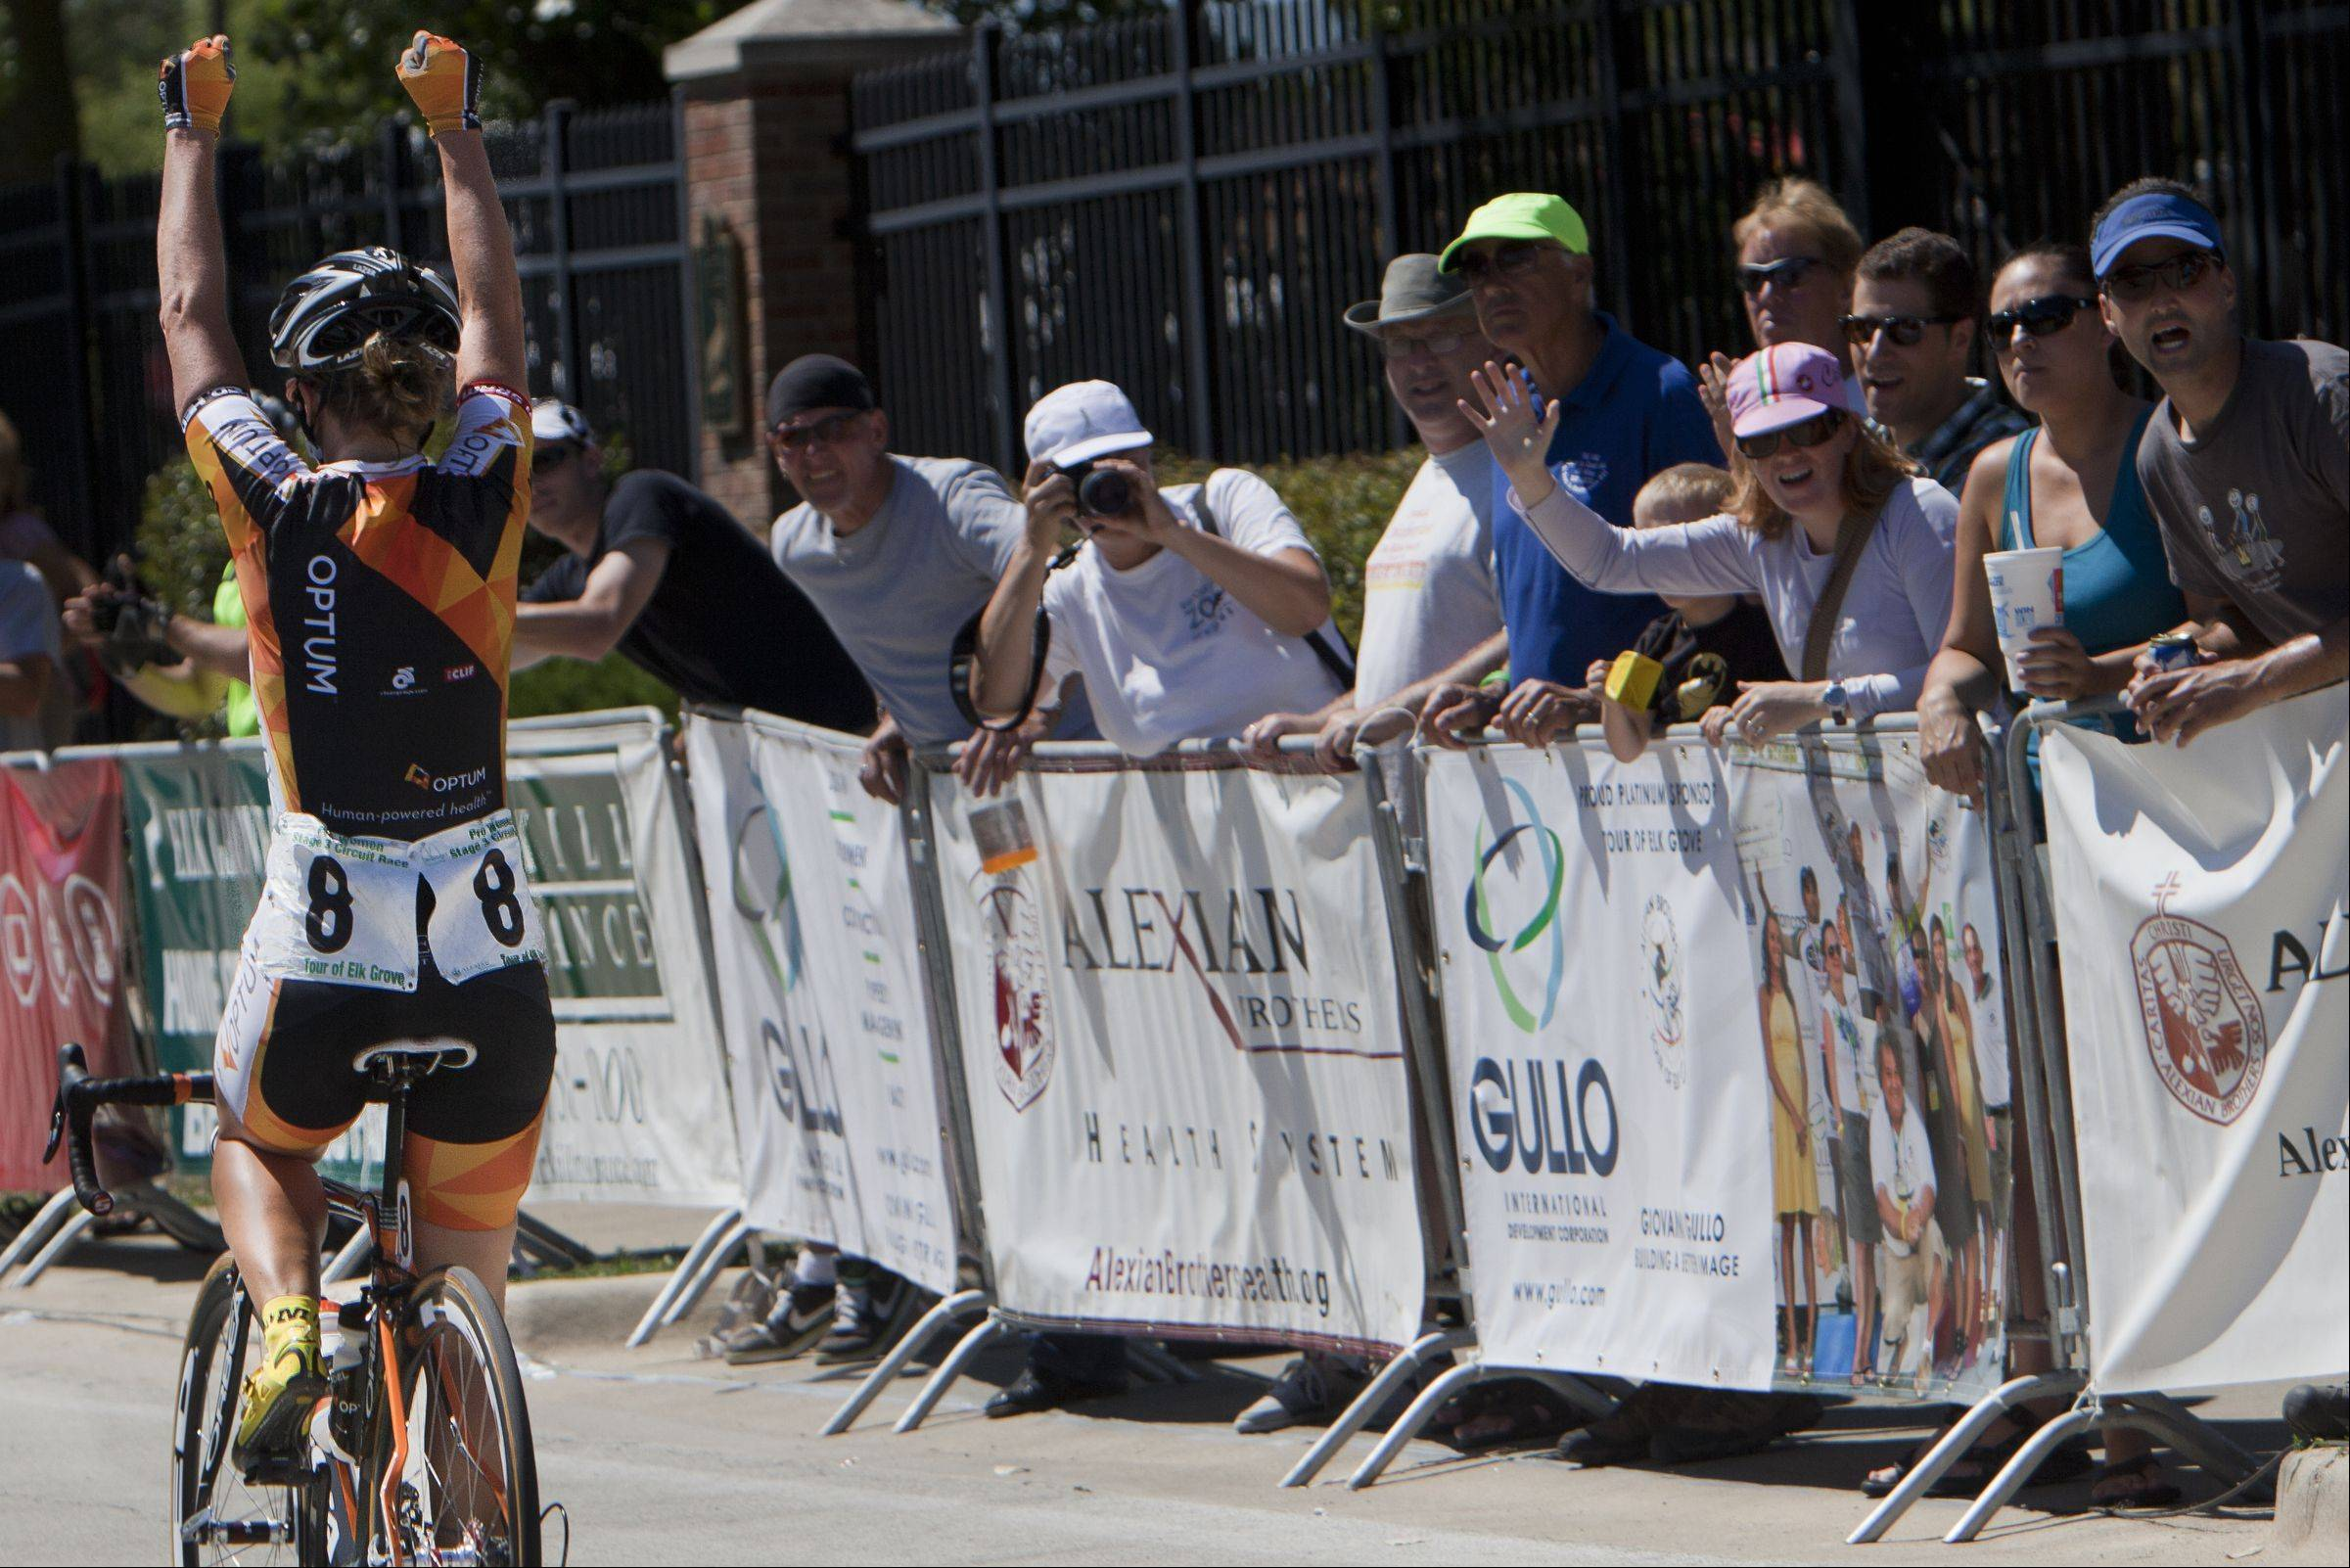 Jade Wilcoxson raises her arms after crossing the finish line to place first overall during the third day of the Alexian Brothers Tour of Elk Grove Union Cycliste International.